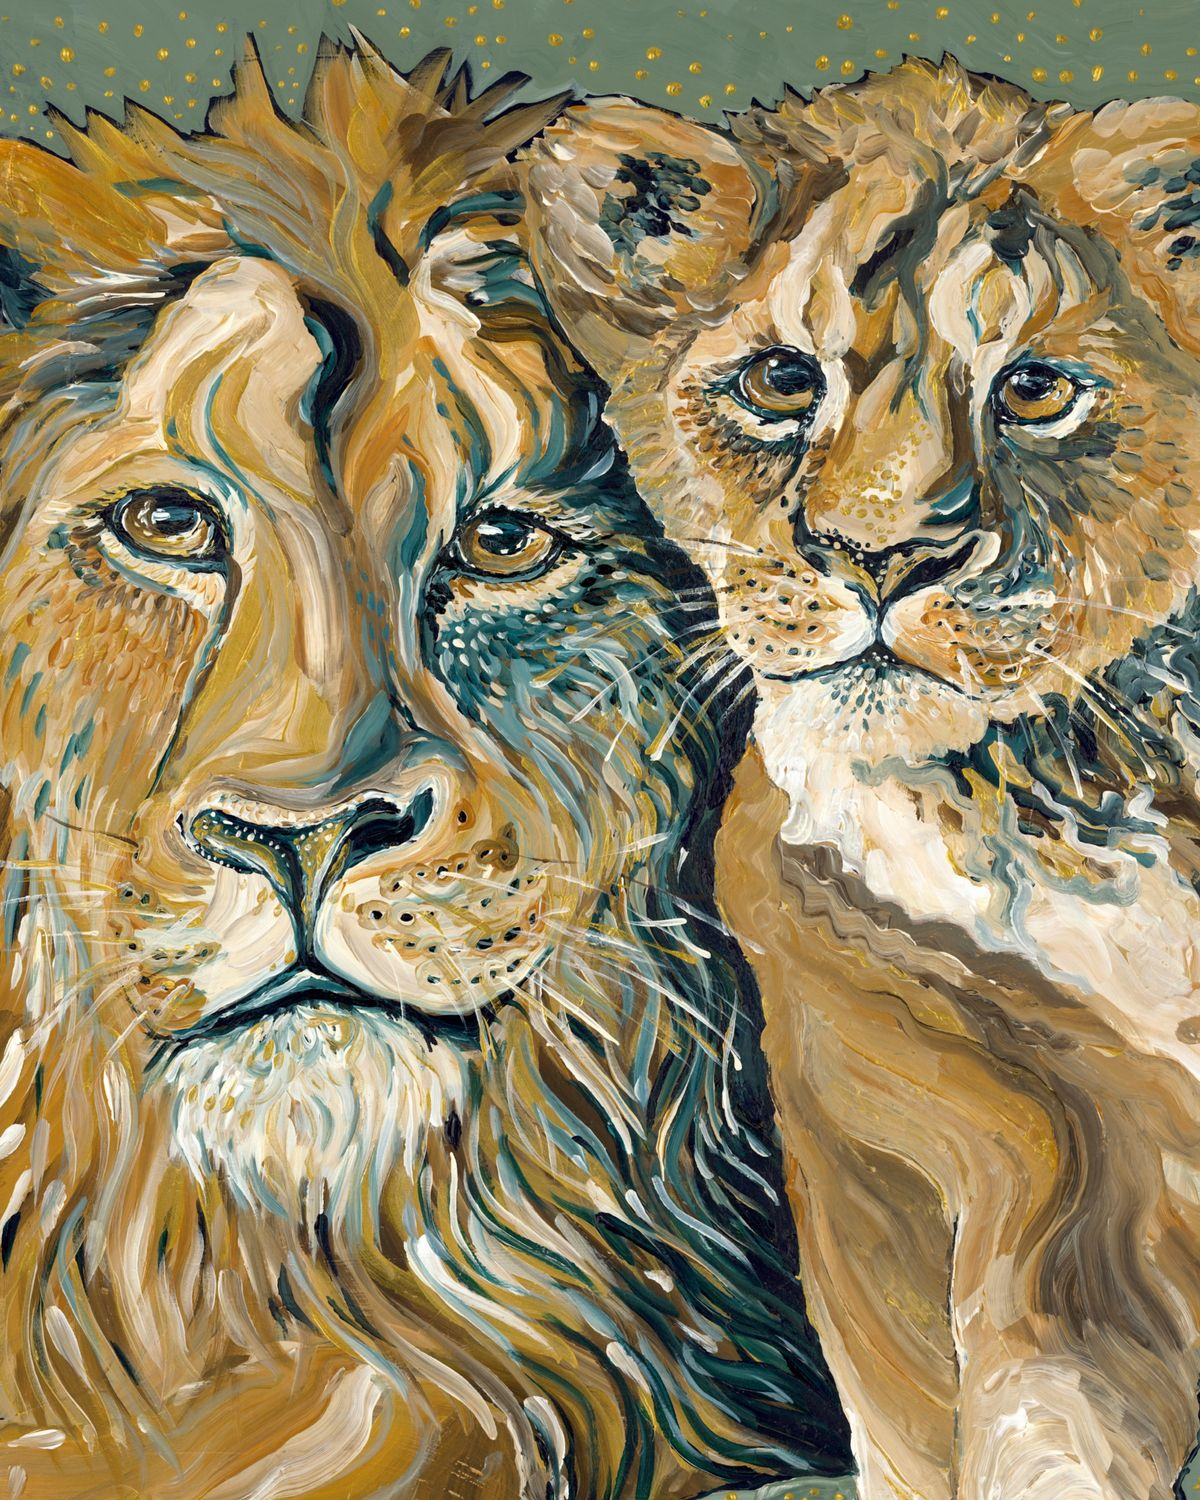 Kate_Fitzgerald_Lion_and_Cub_Austin_Art_Austin_gifts.jpeg